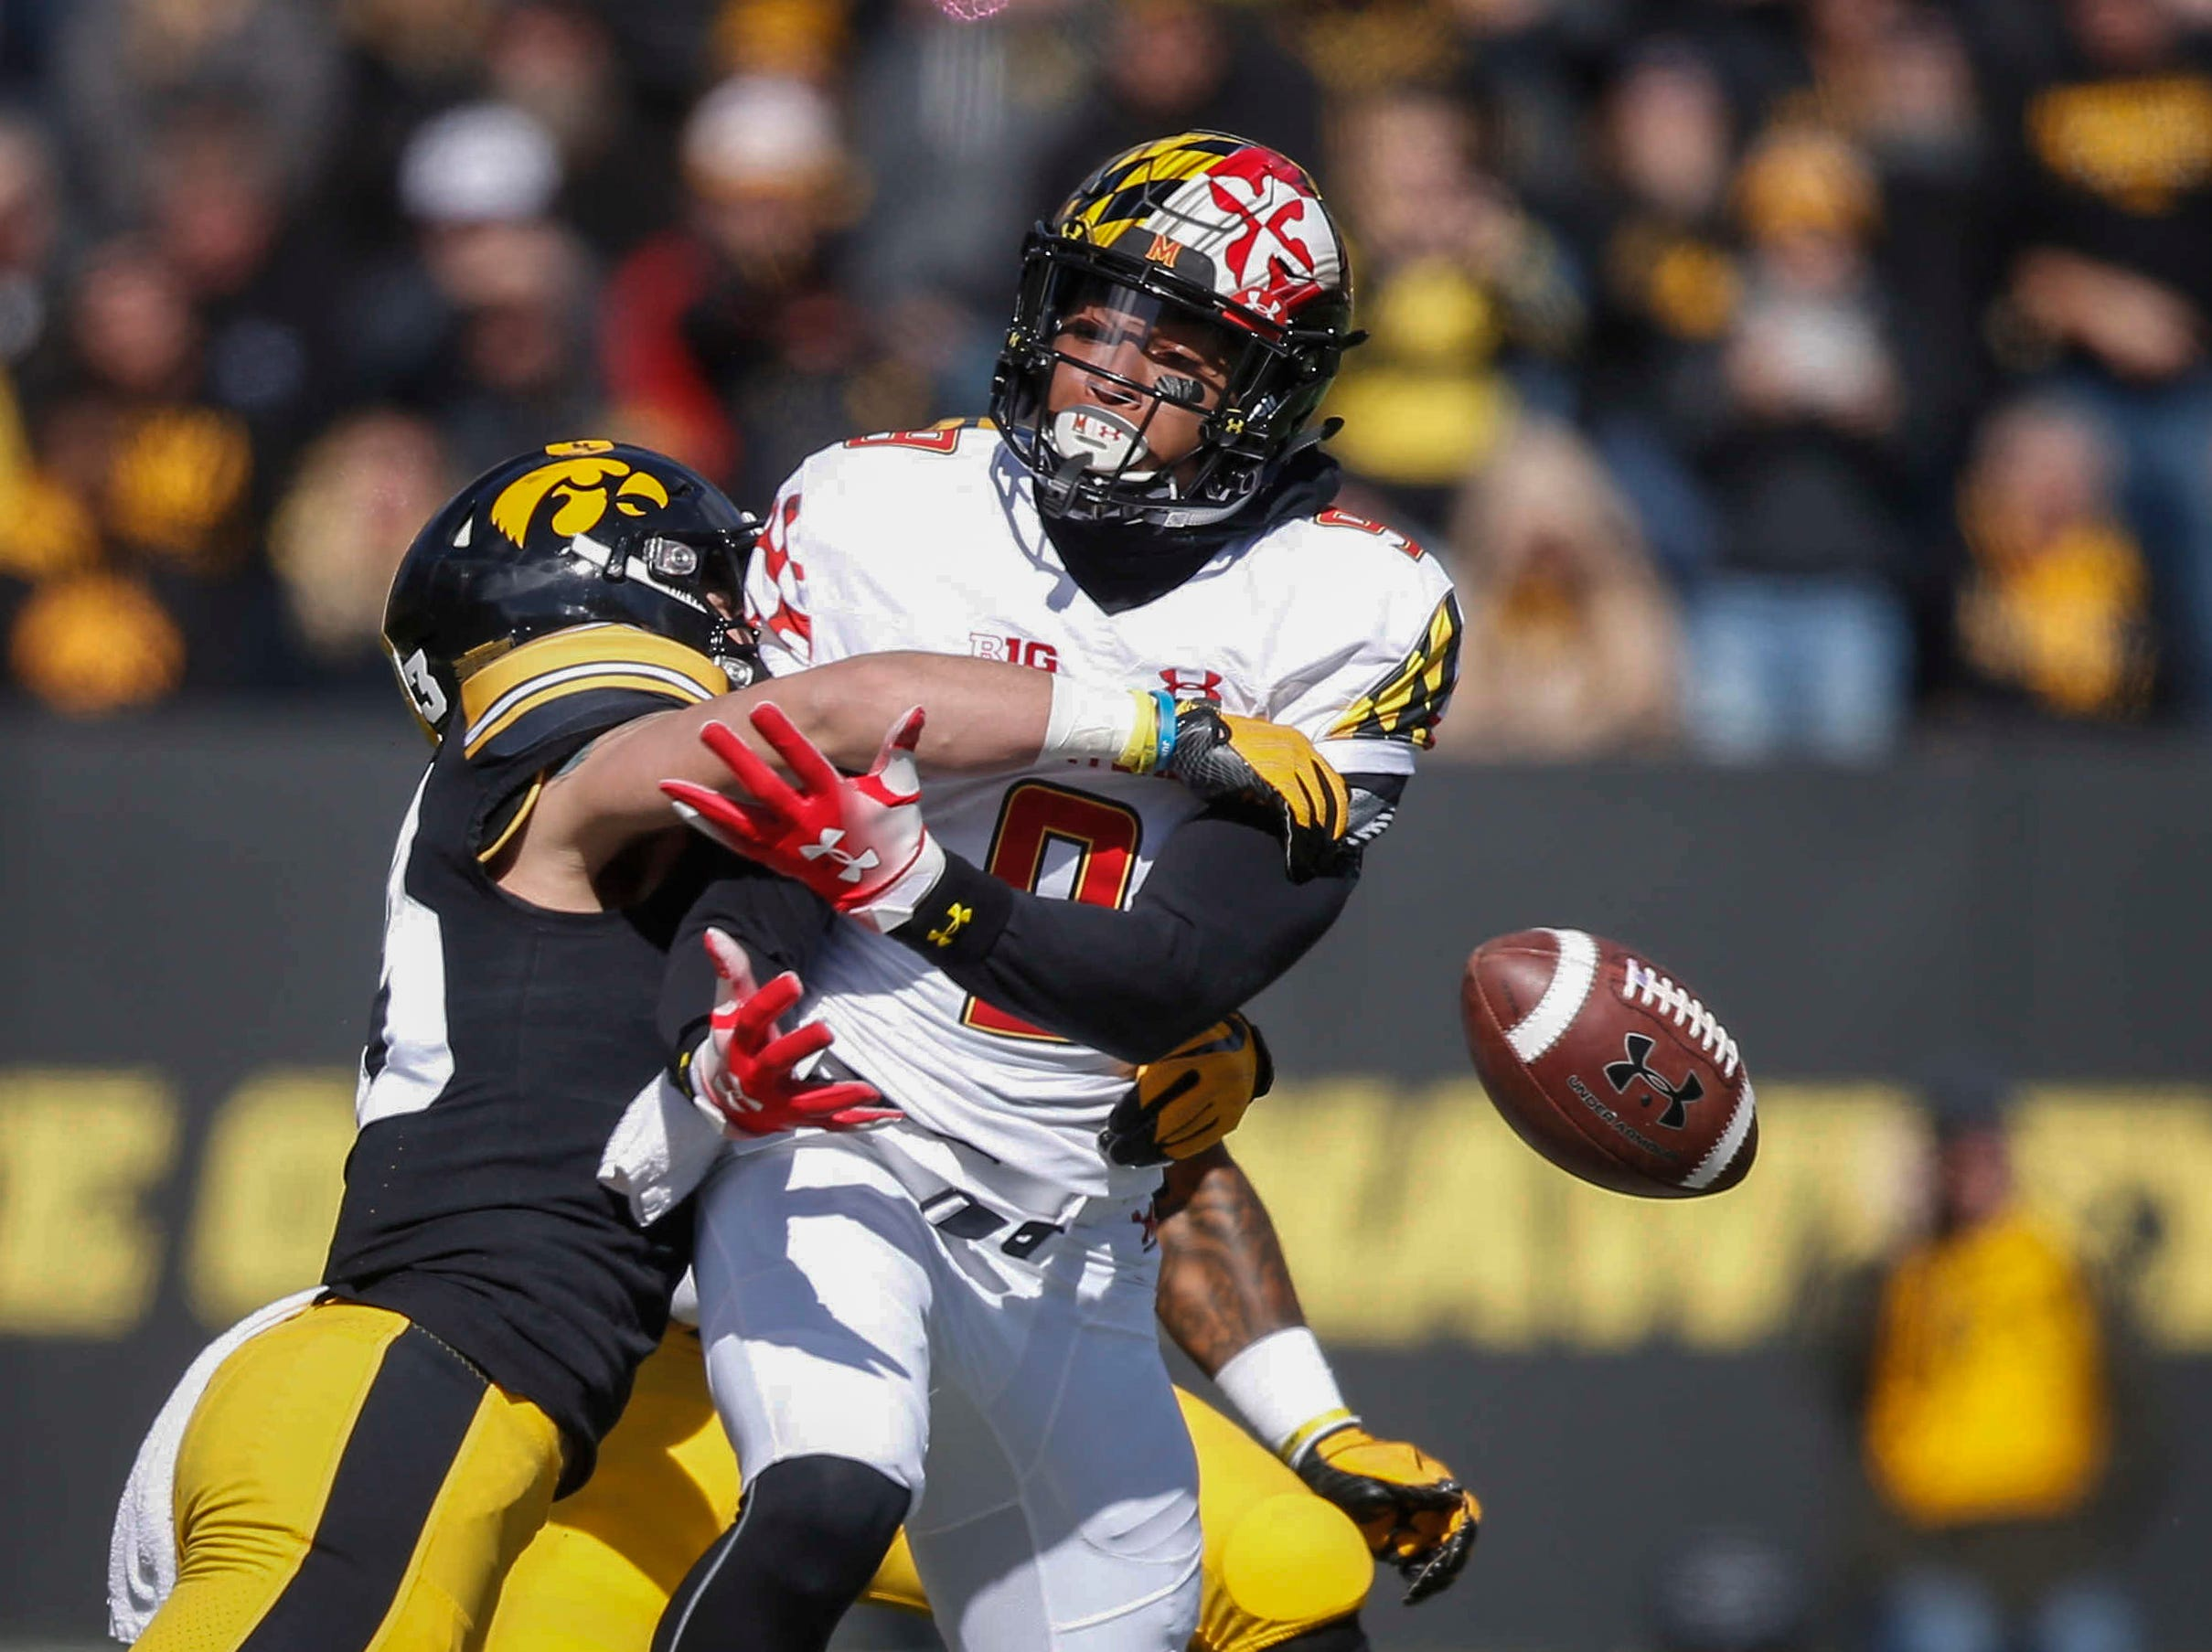 Hawkeyes reach the top 20 in latest Coaches Poll following Maryland shutout